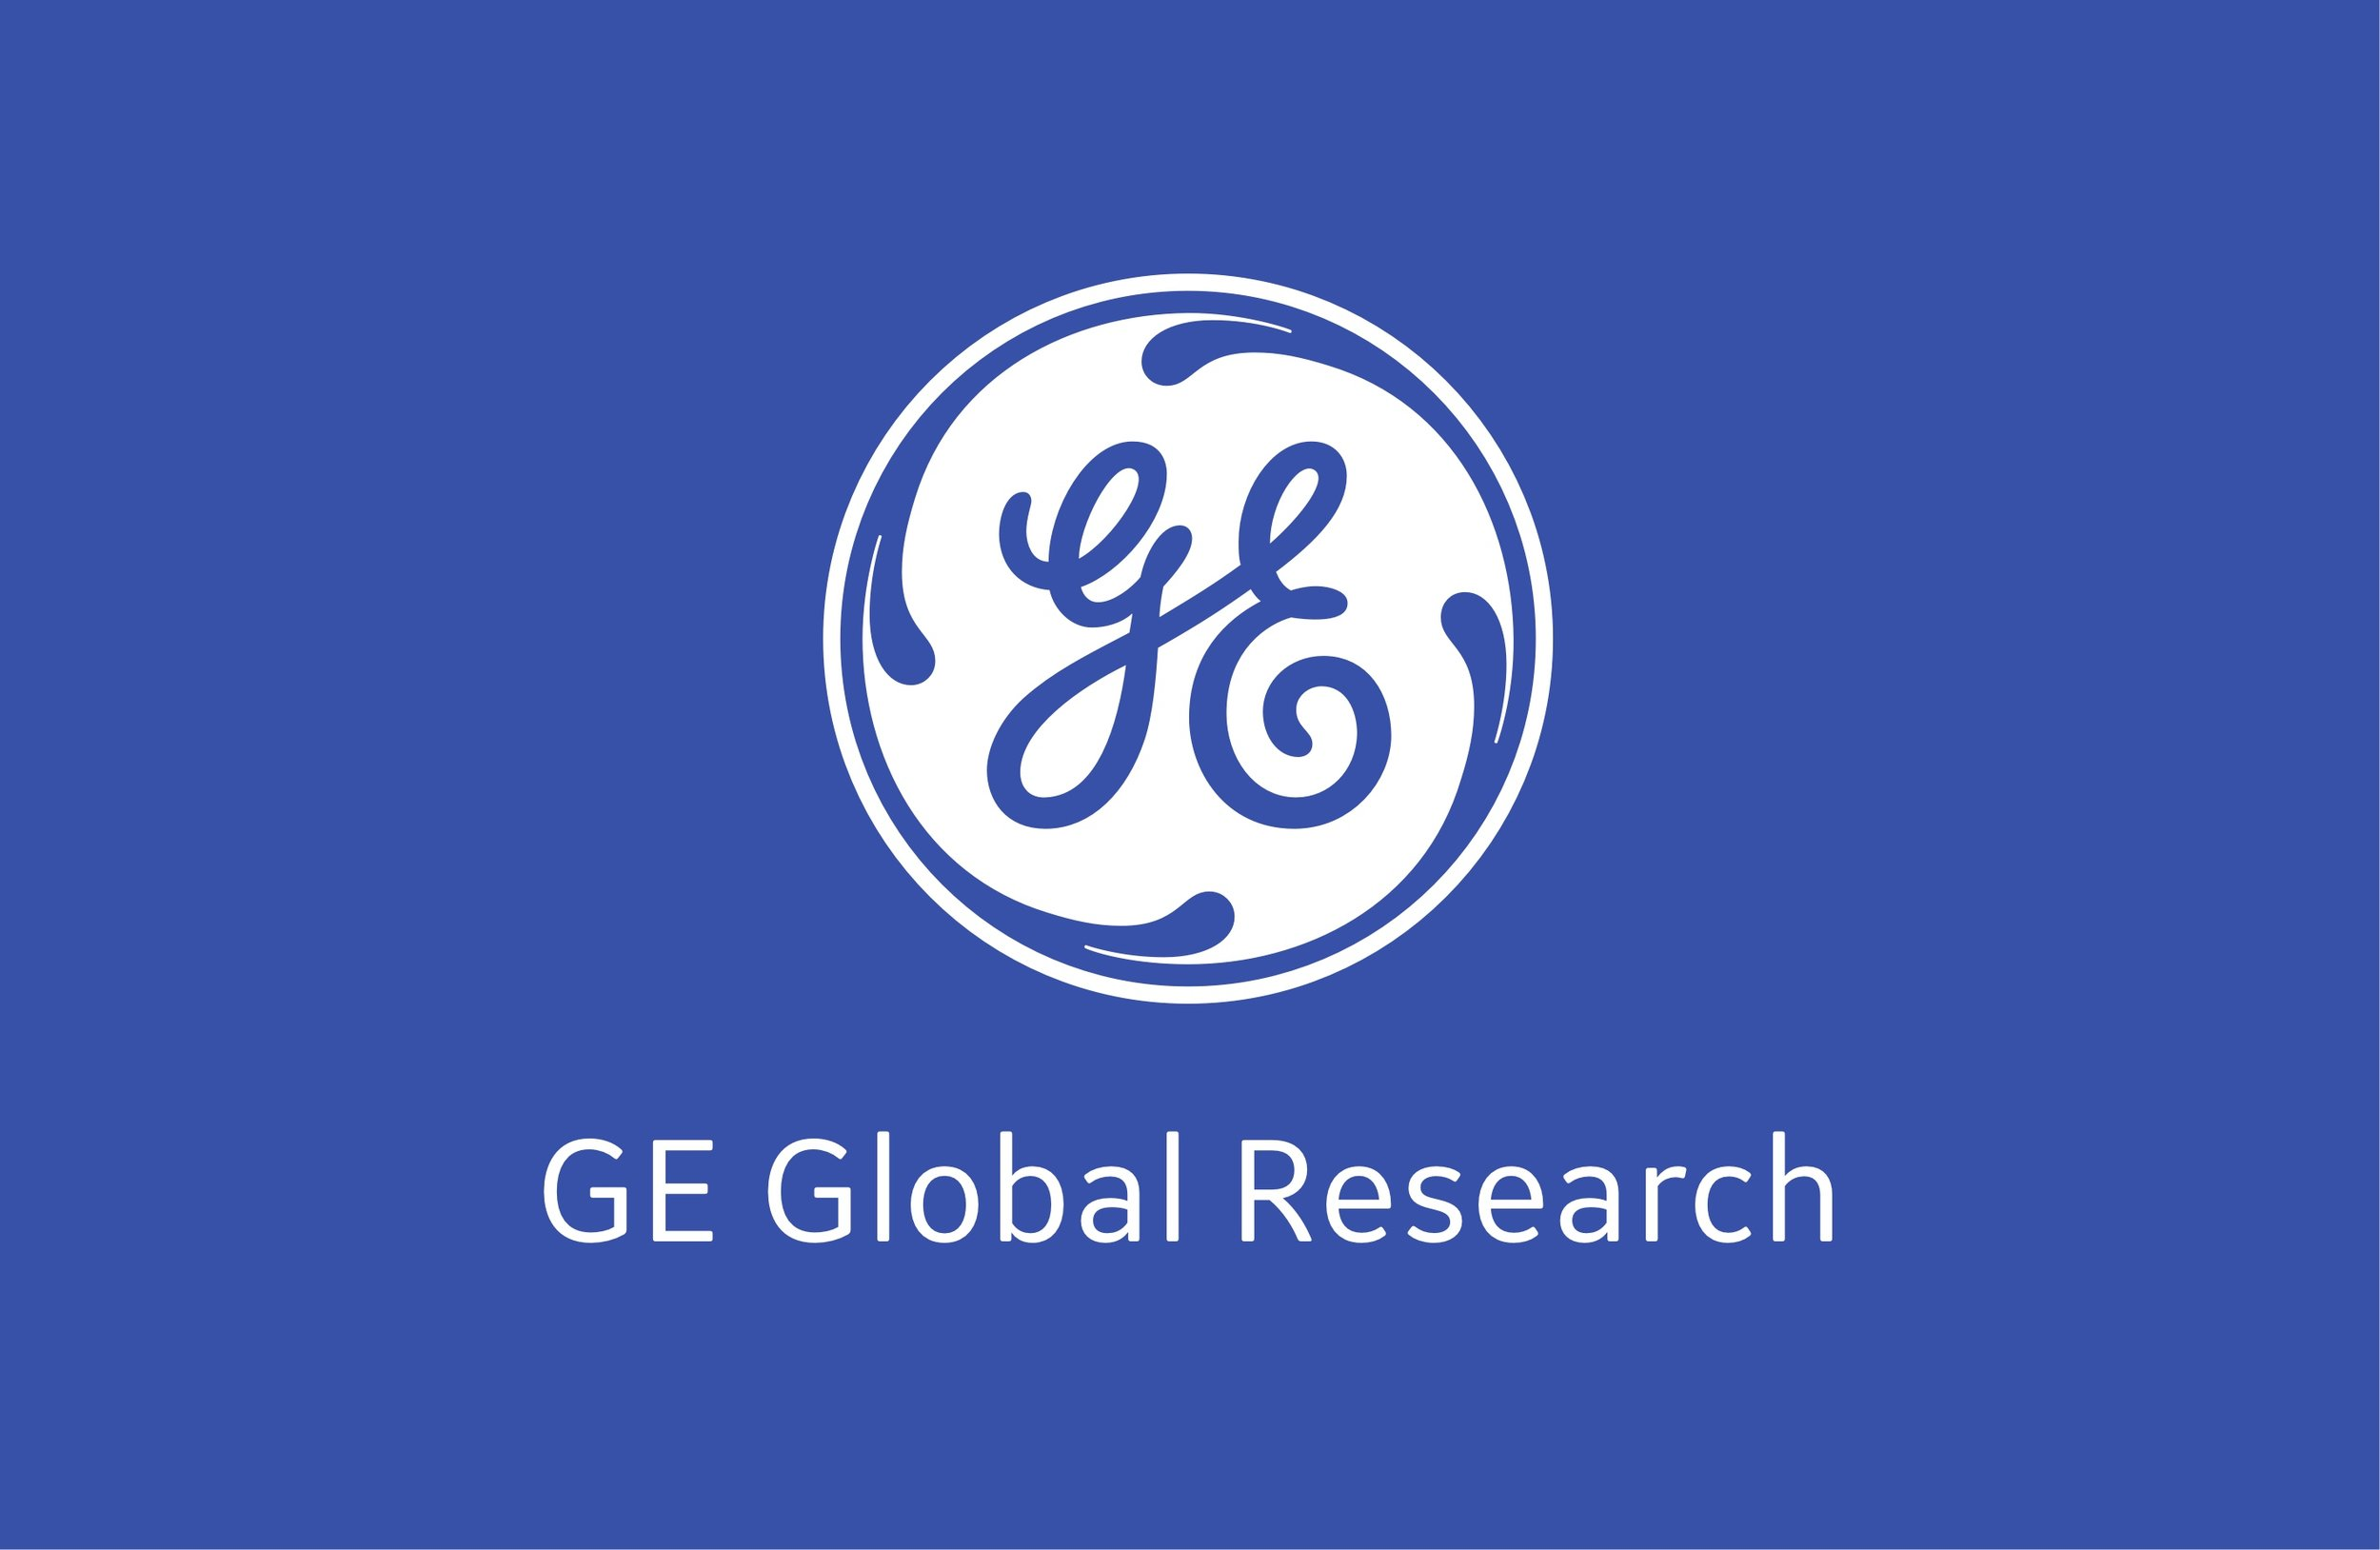 GE Global Research | Collaborative business intelligence